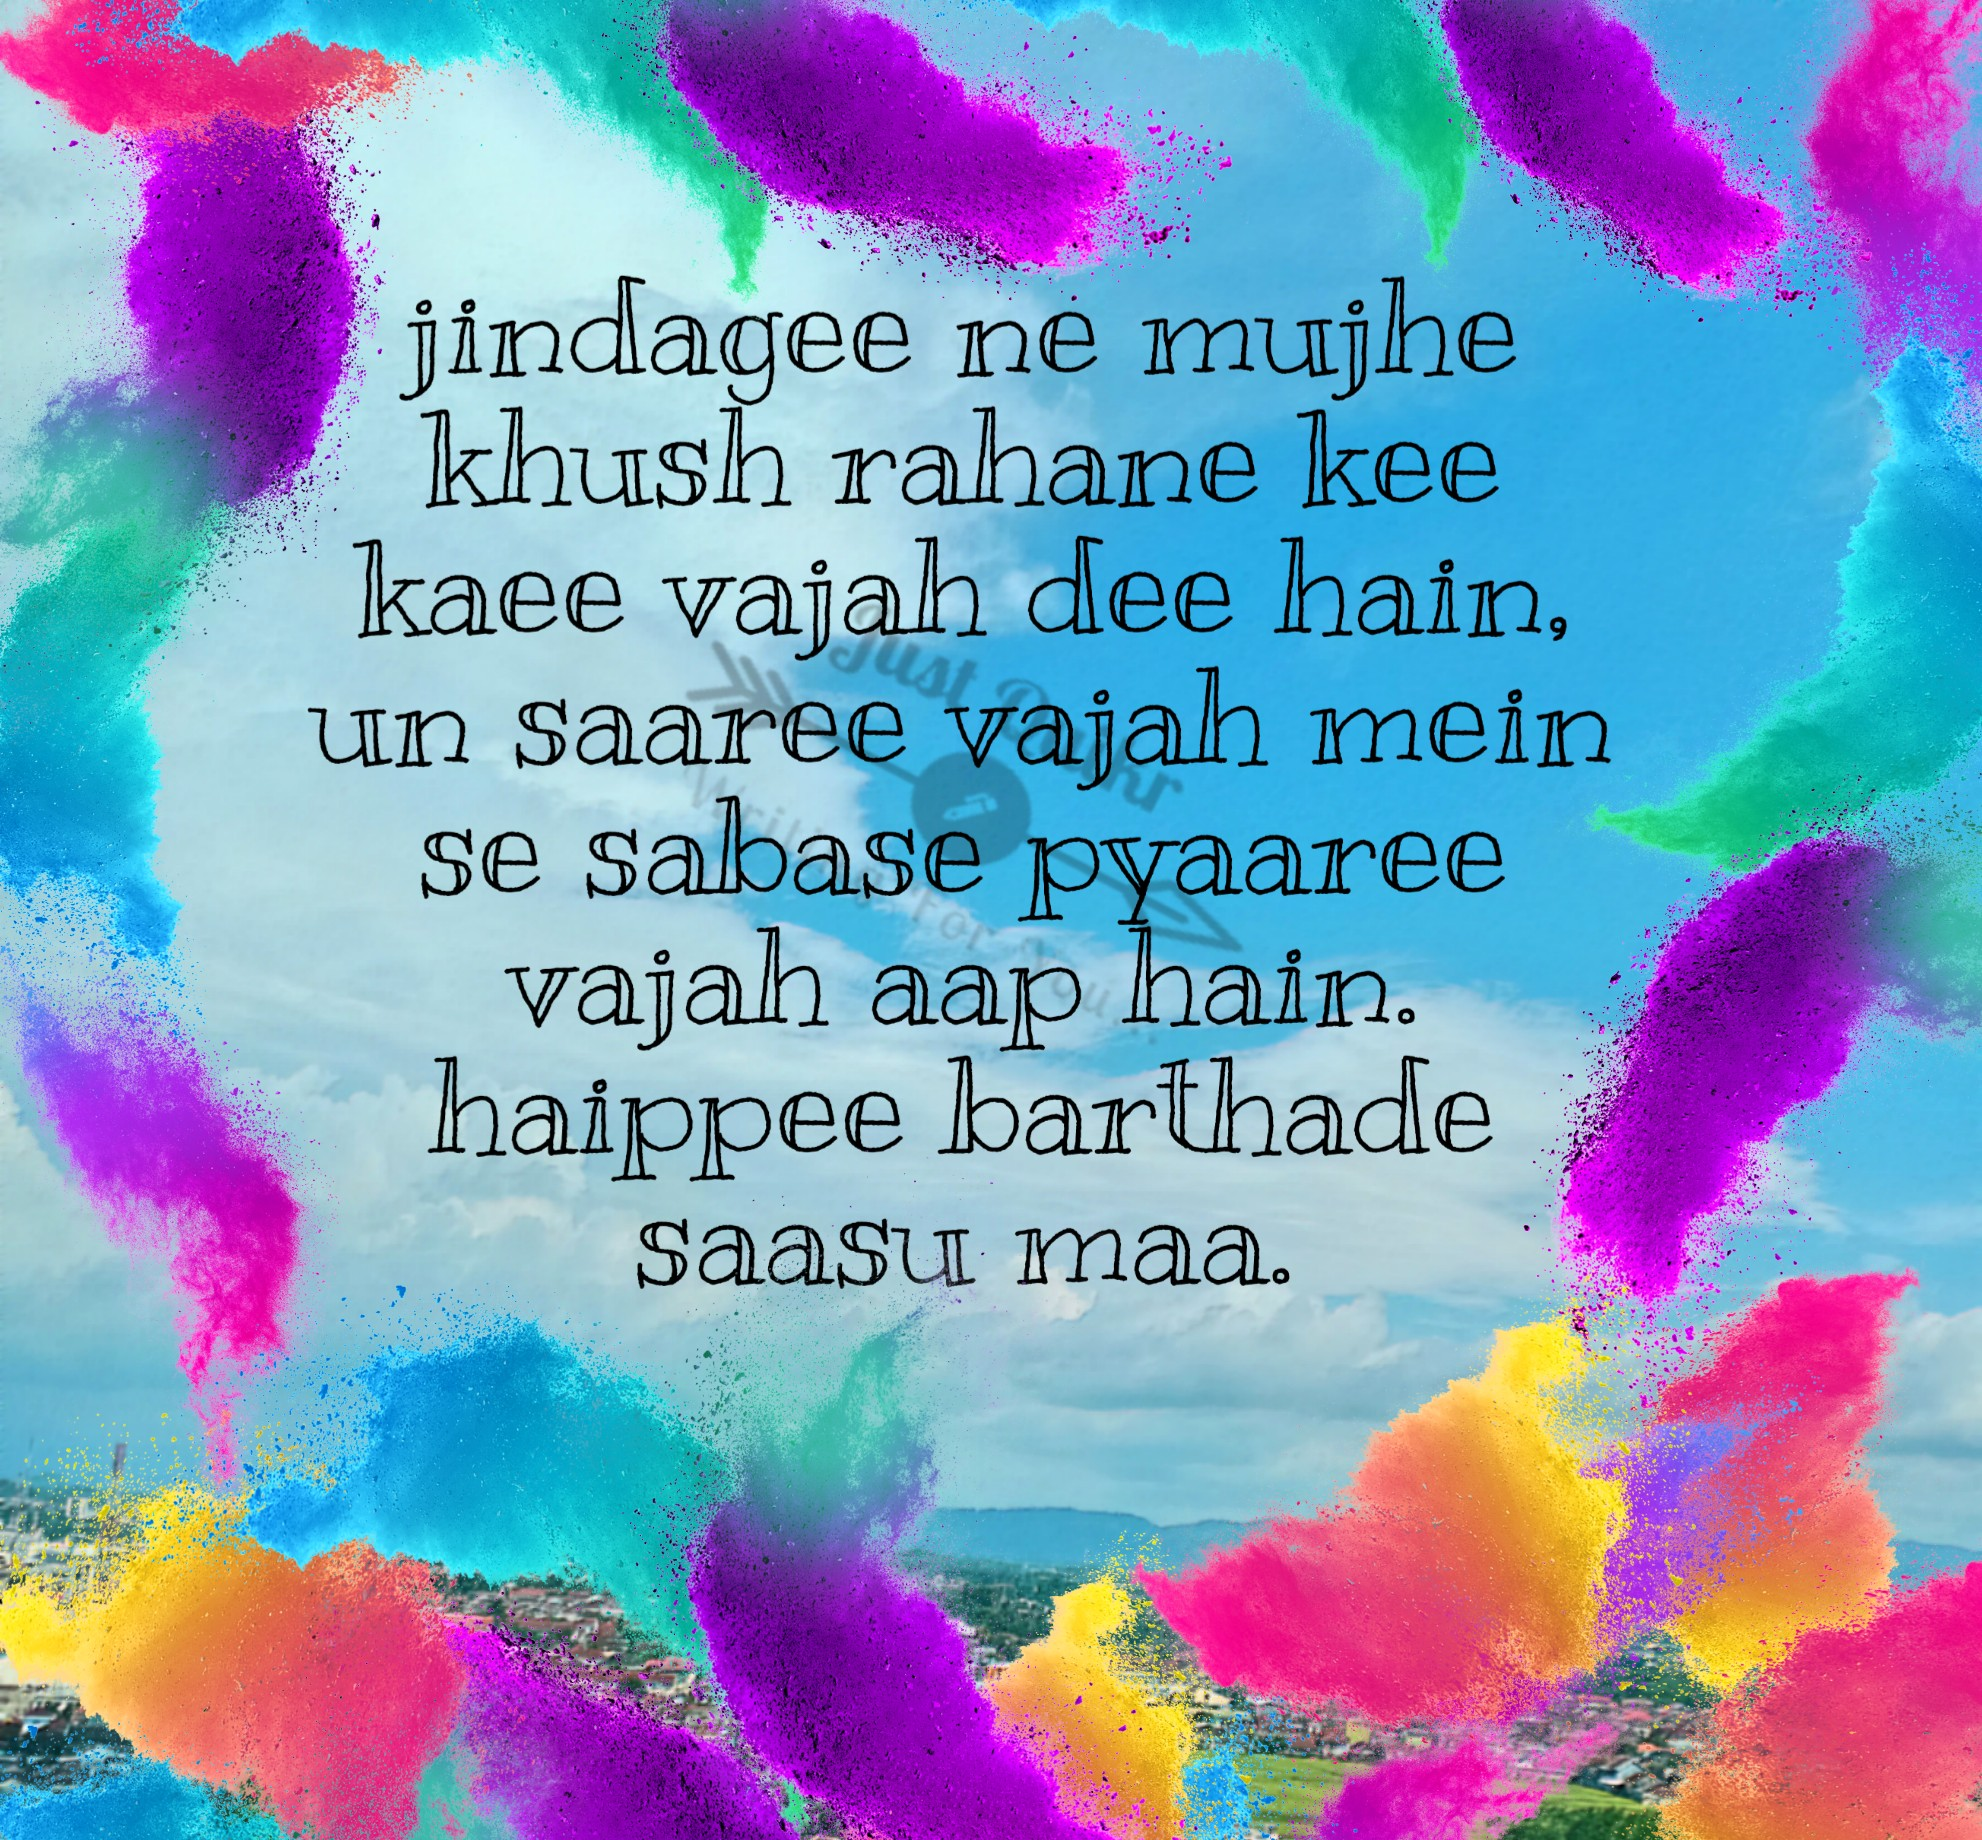 Happy Birthday Shayari Greetings Sayings SMS and Images for InLaw